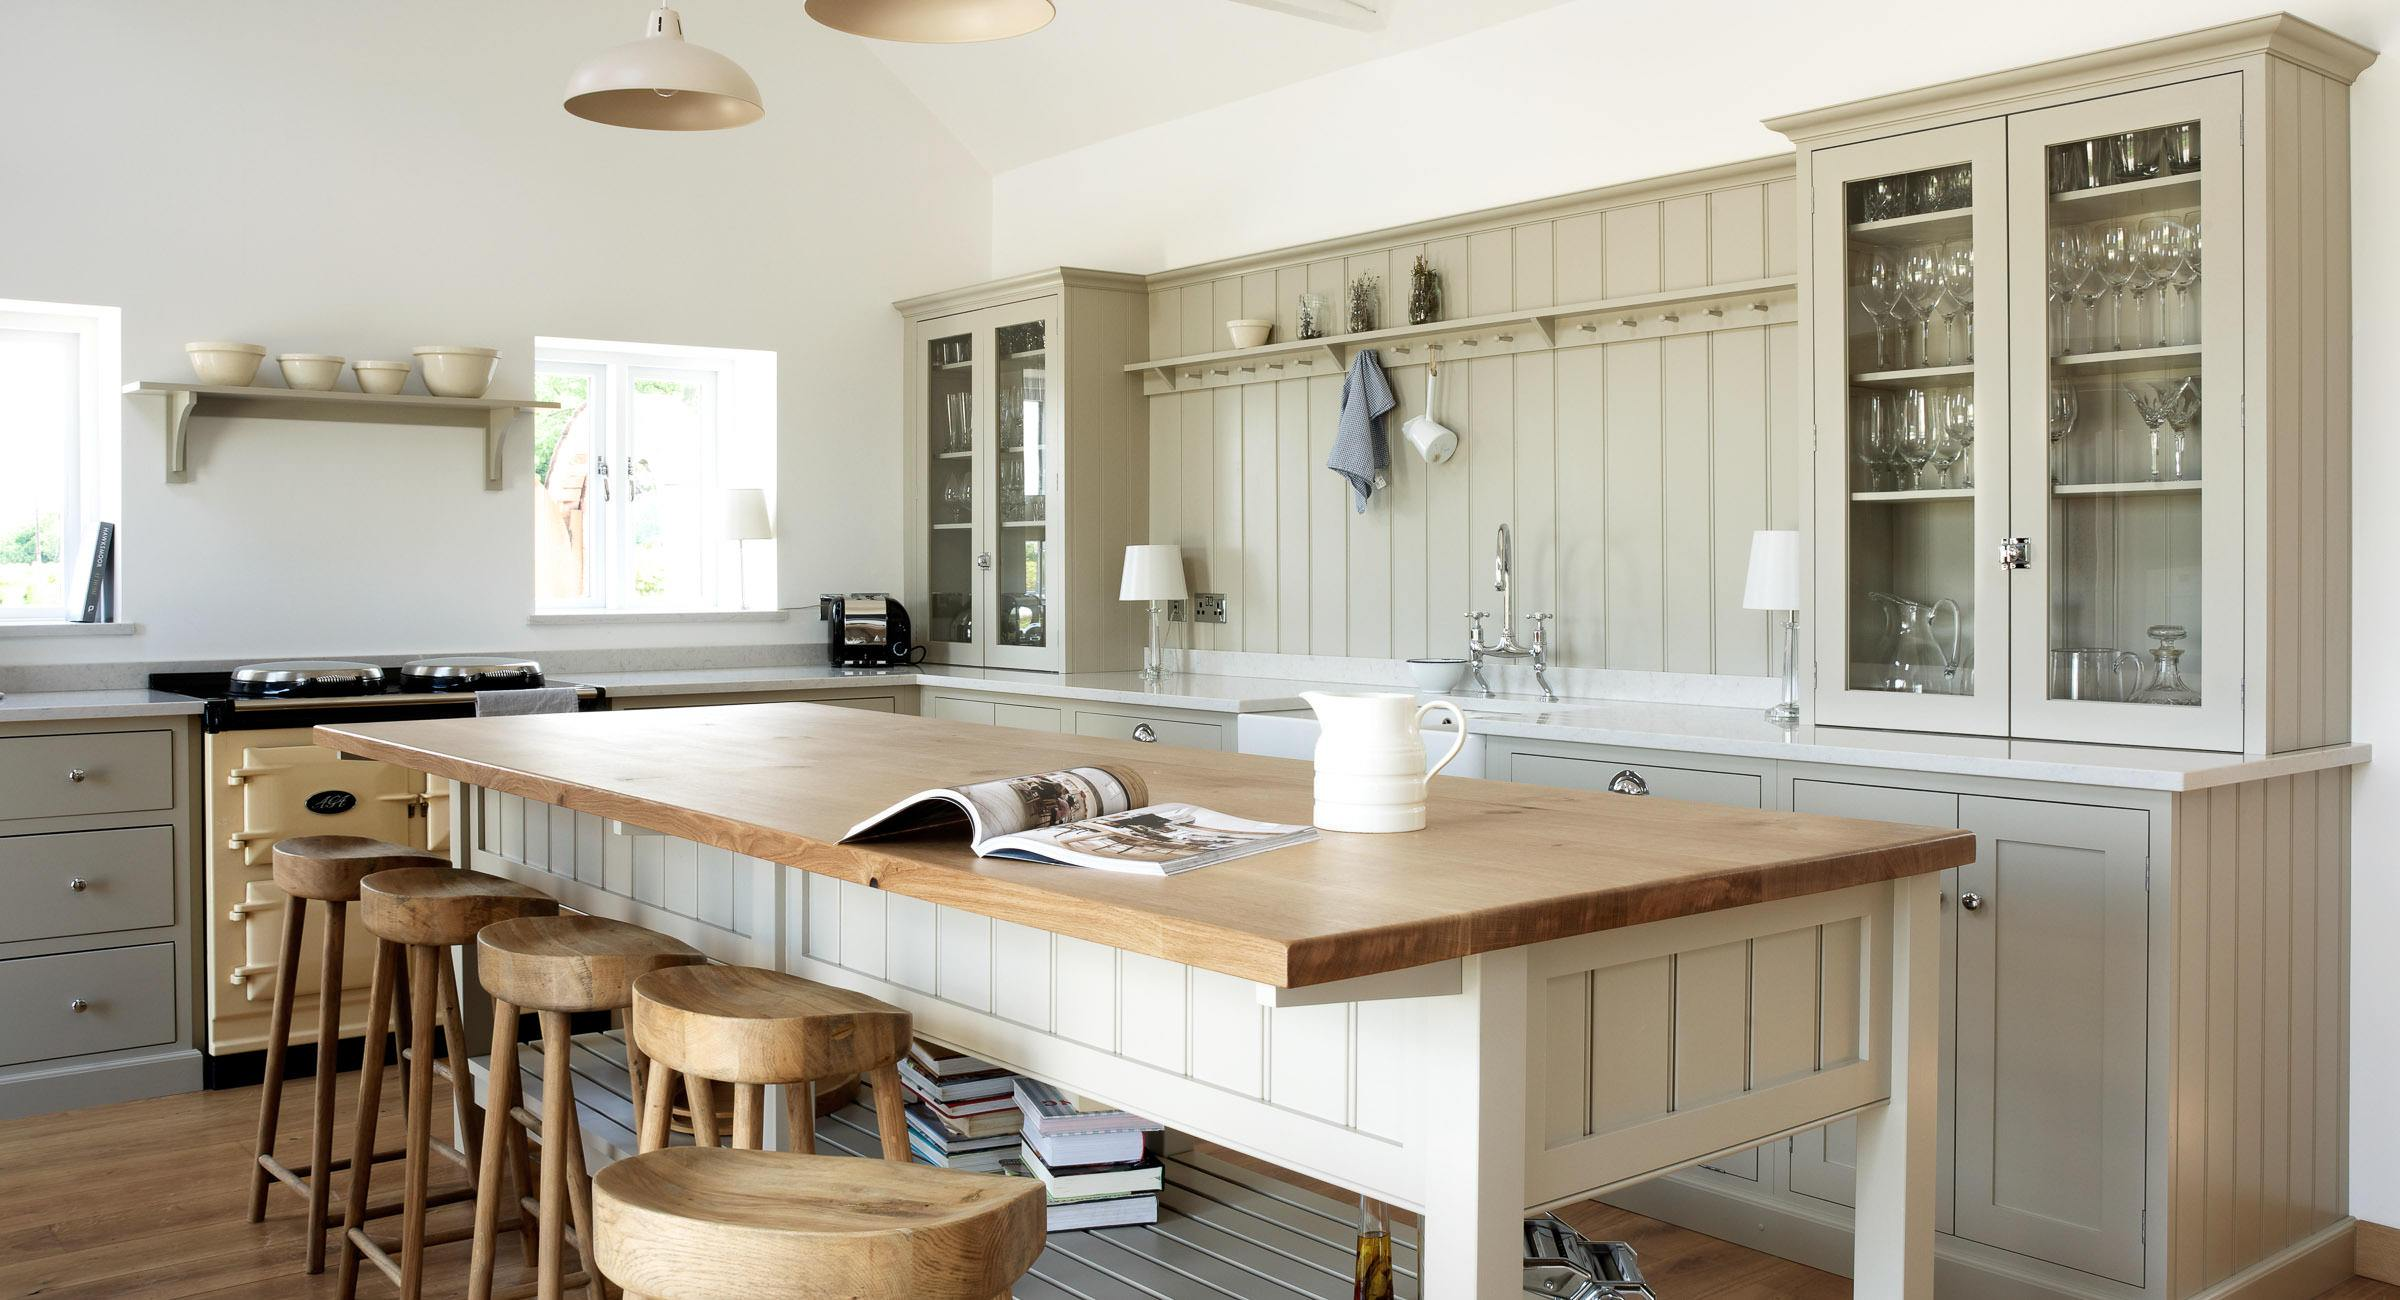 The warwickshire barn kitchen devol kitchens for Barn style kitchen cabinets